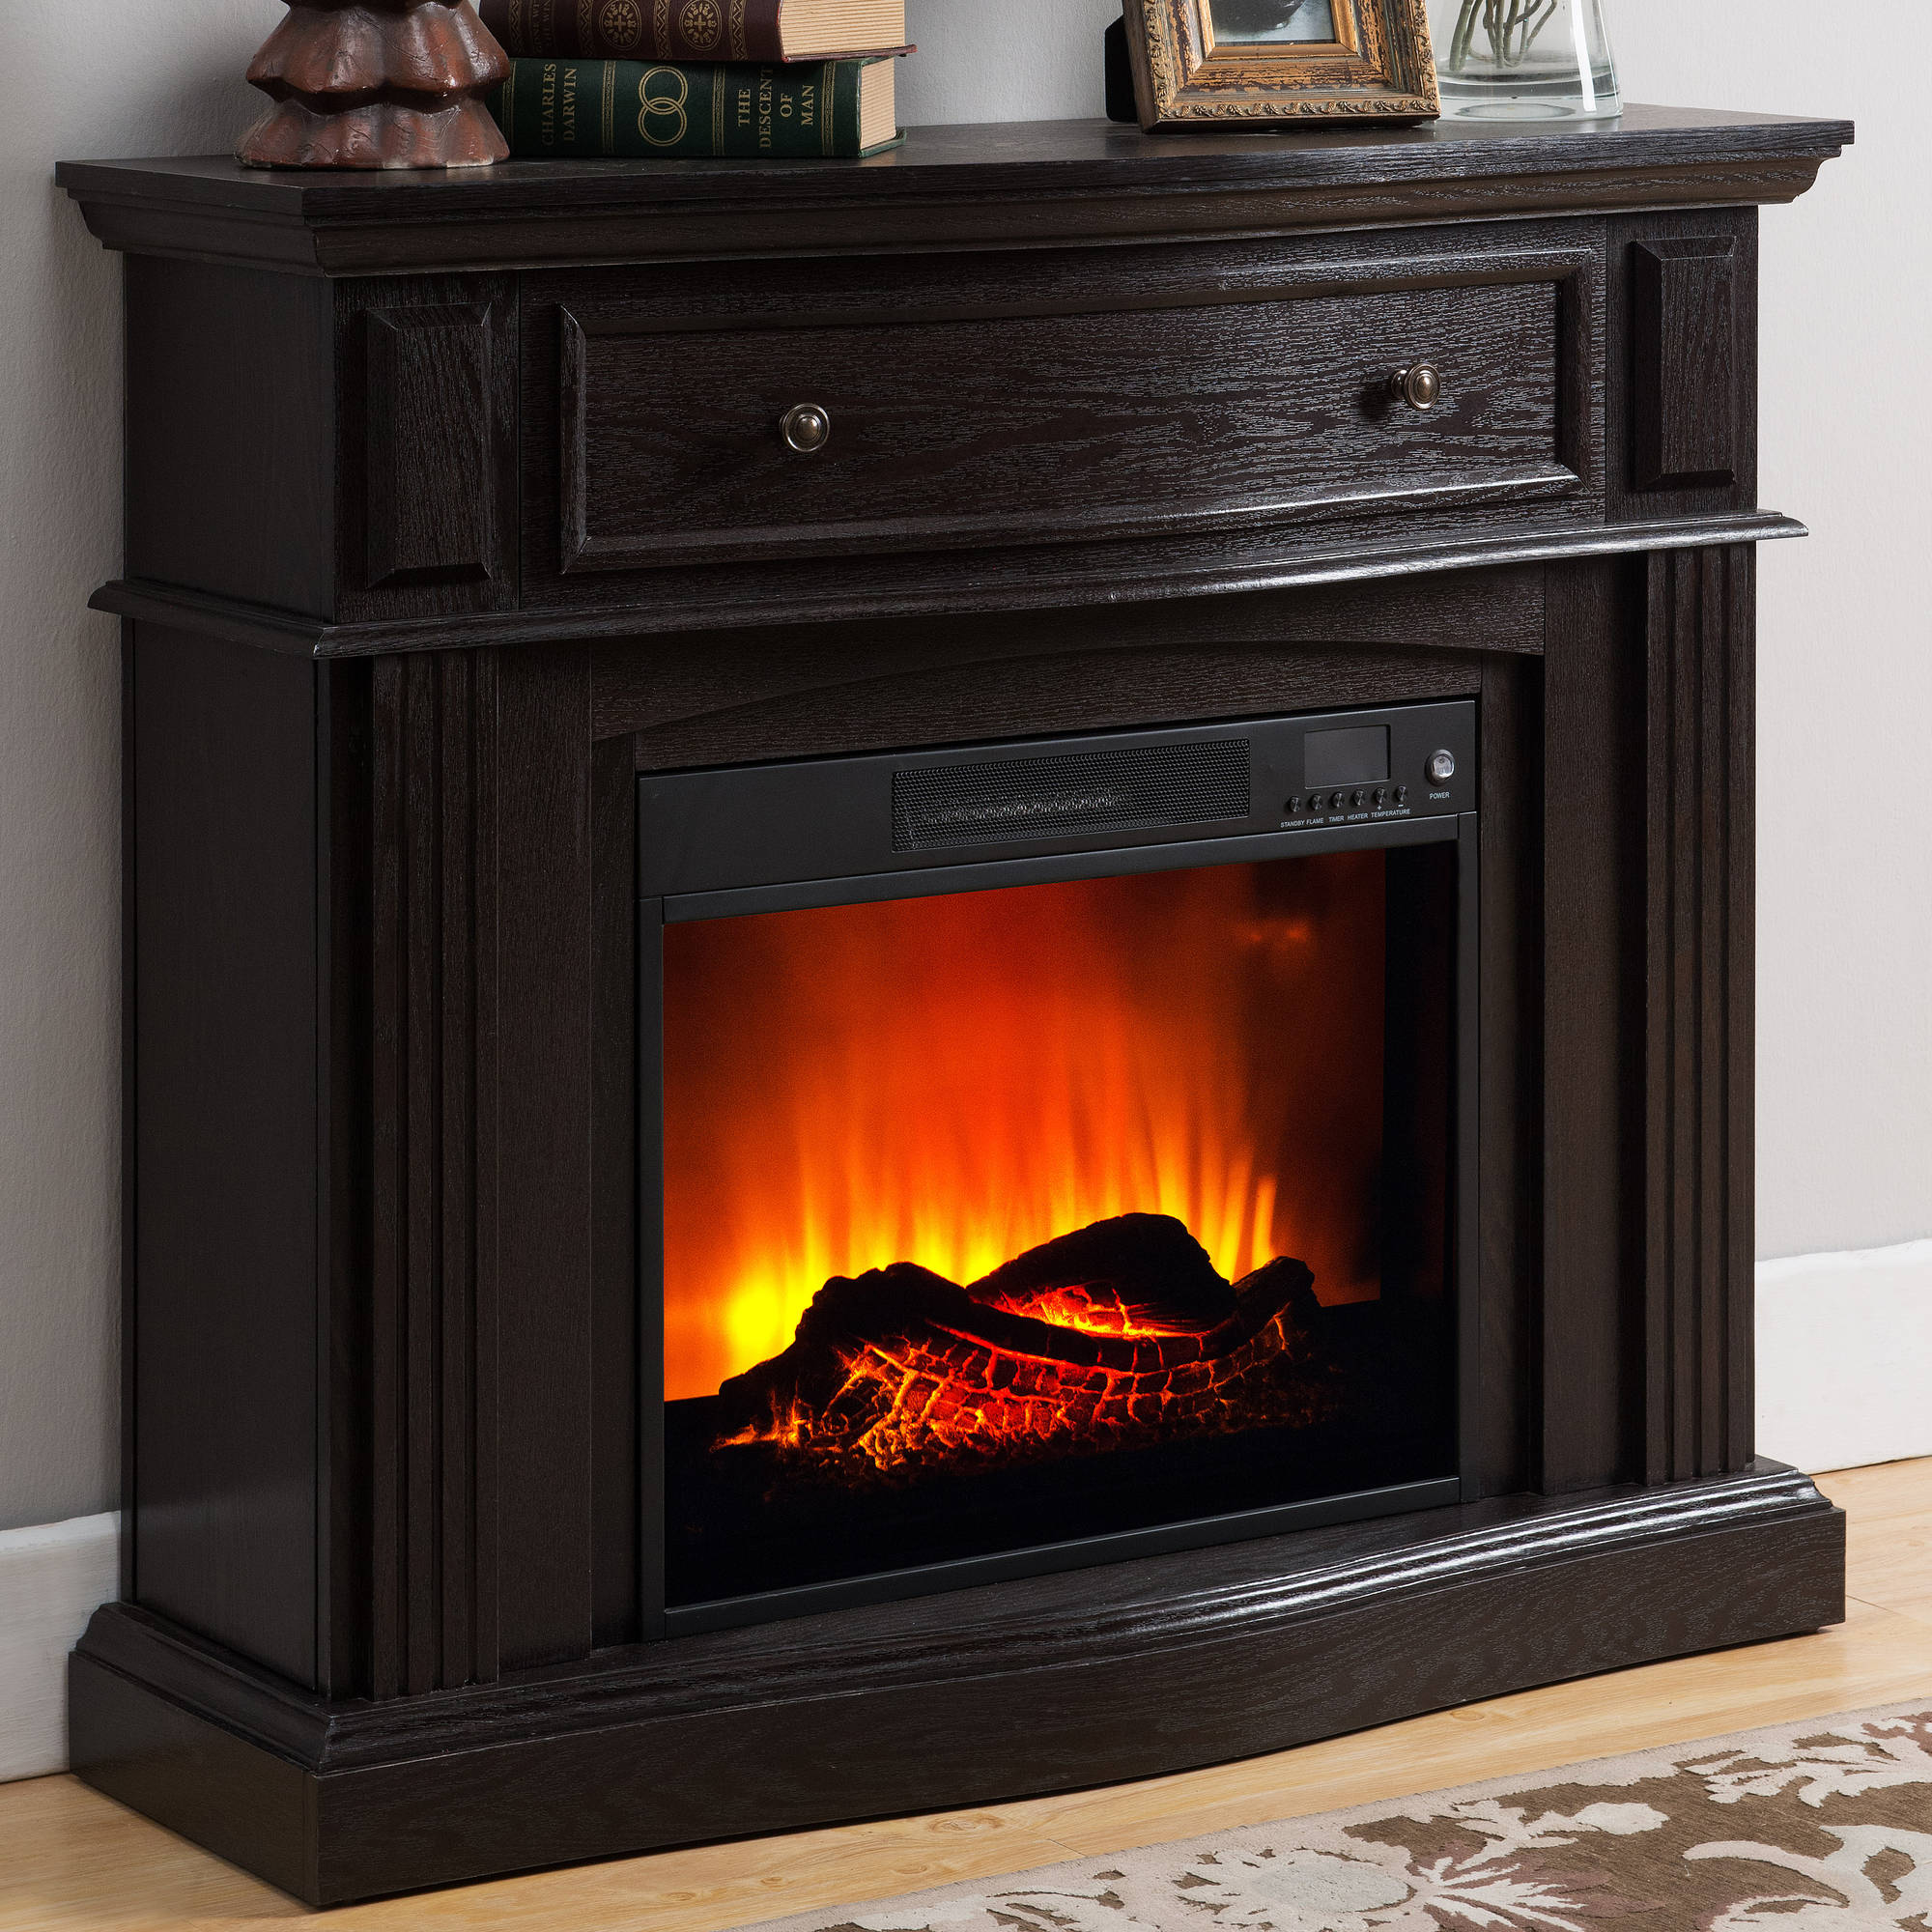 Prokonian Electric Fireplace With 44 Mantle With Storage Pr04